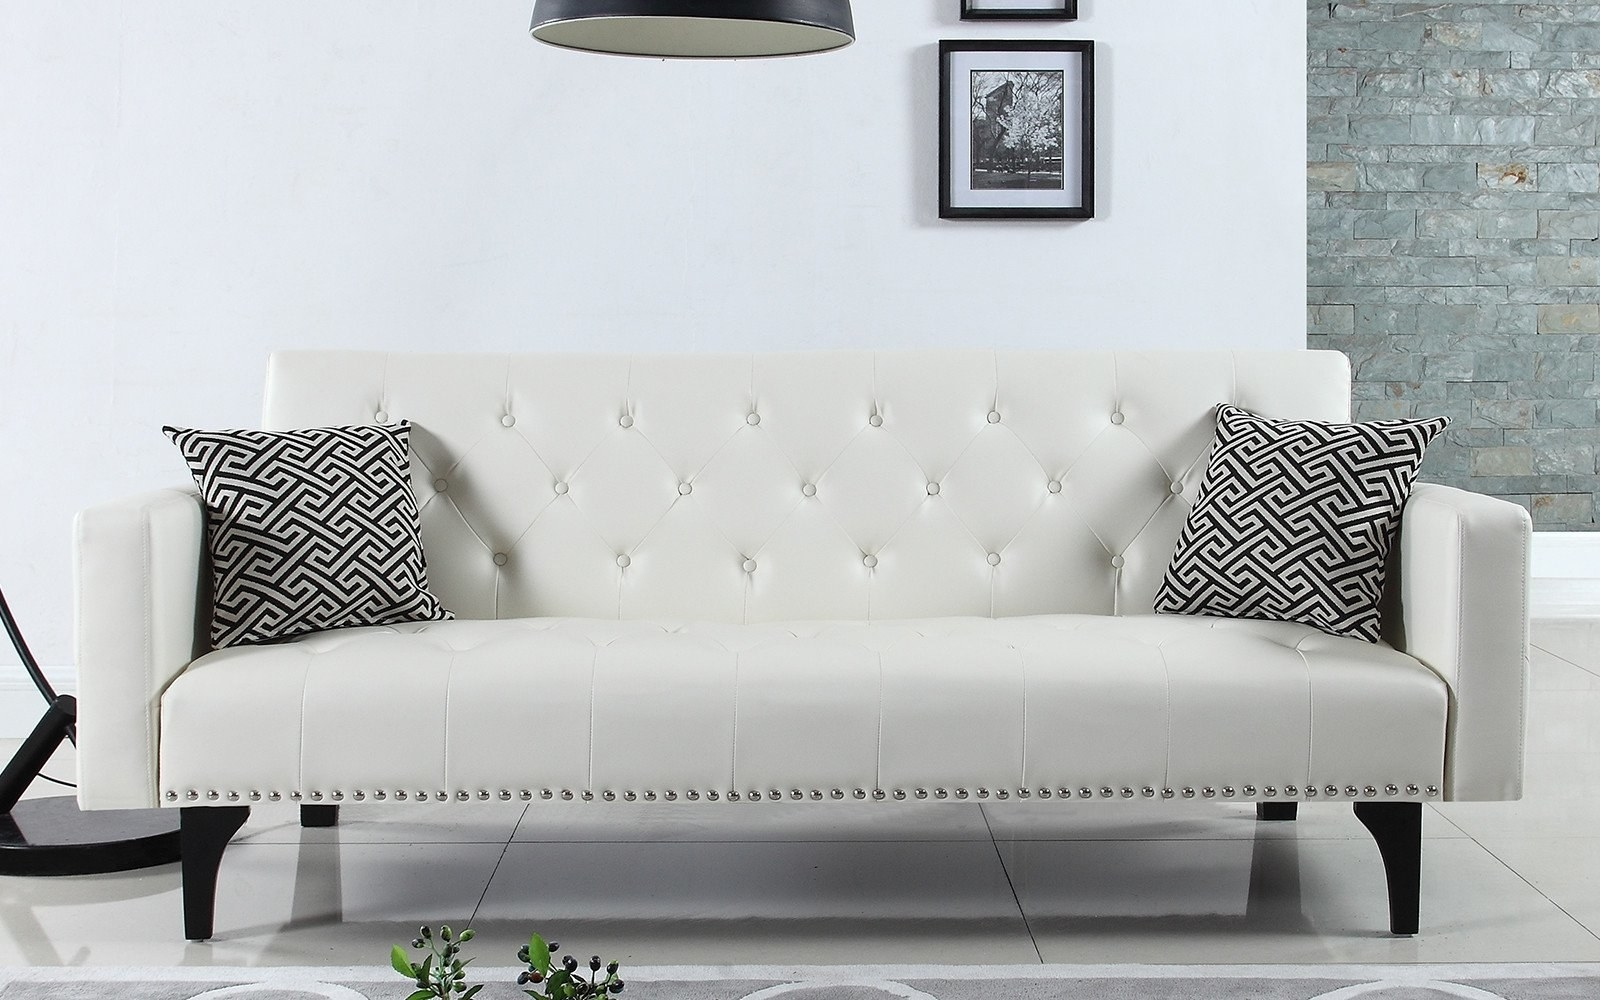 Promising Review: U0026quot;The Couch Is Stunning! It Works Well As A Bed